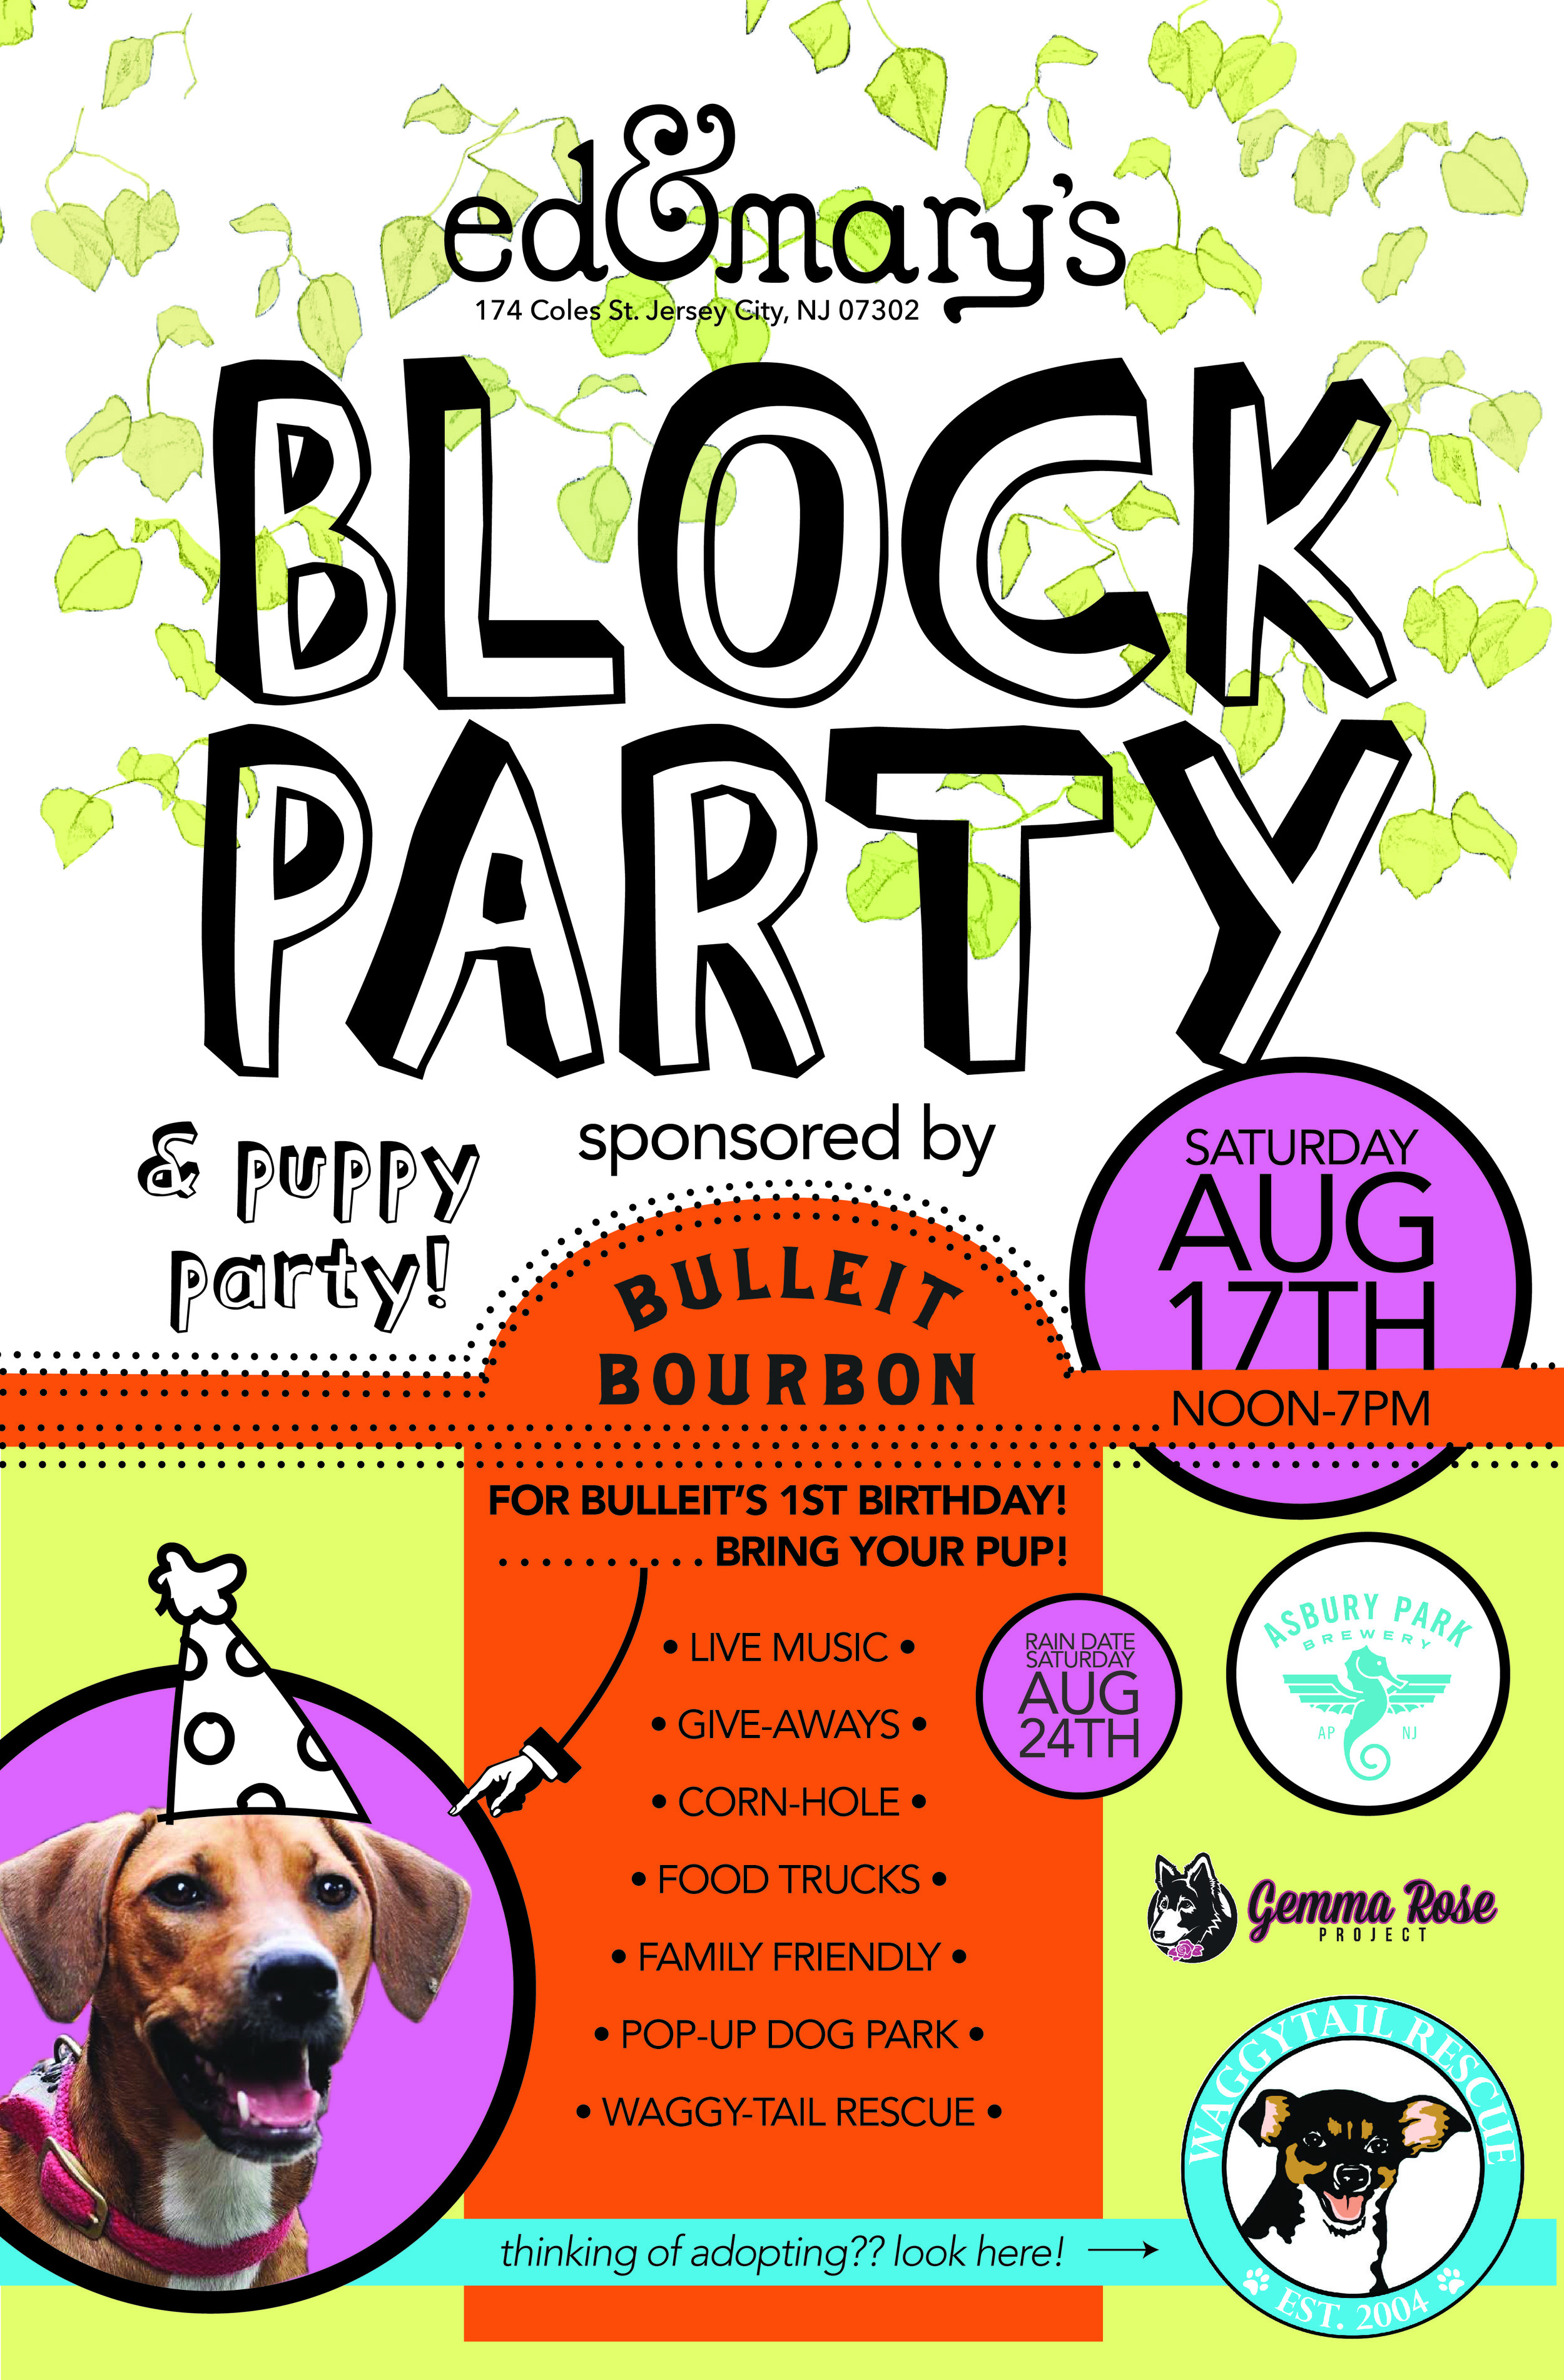 block_party_poster_final-01.jpg